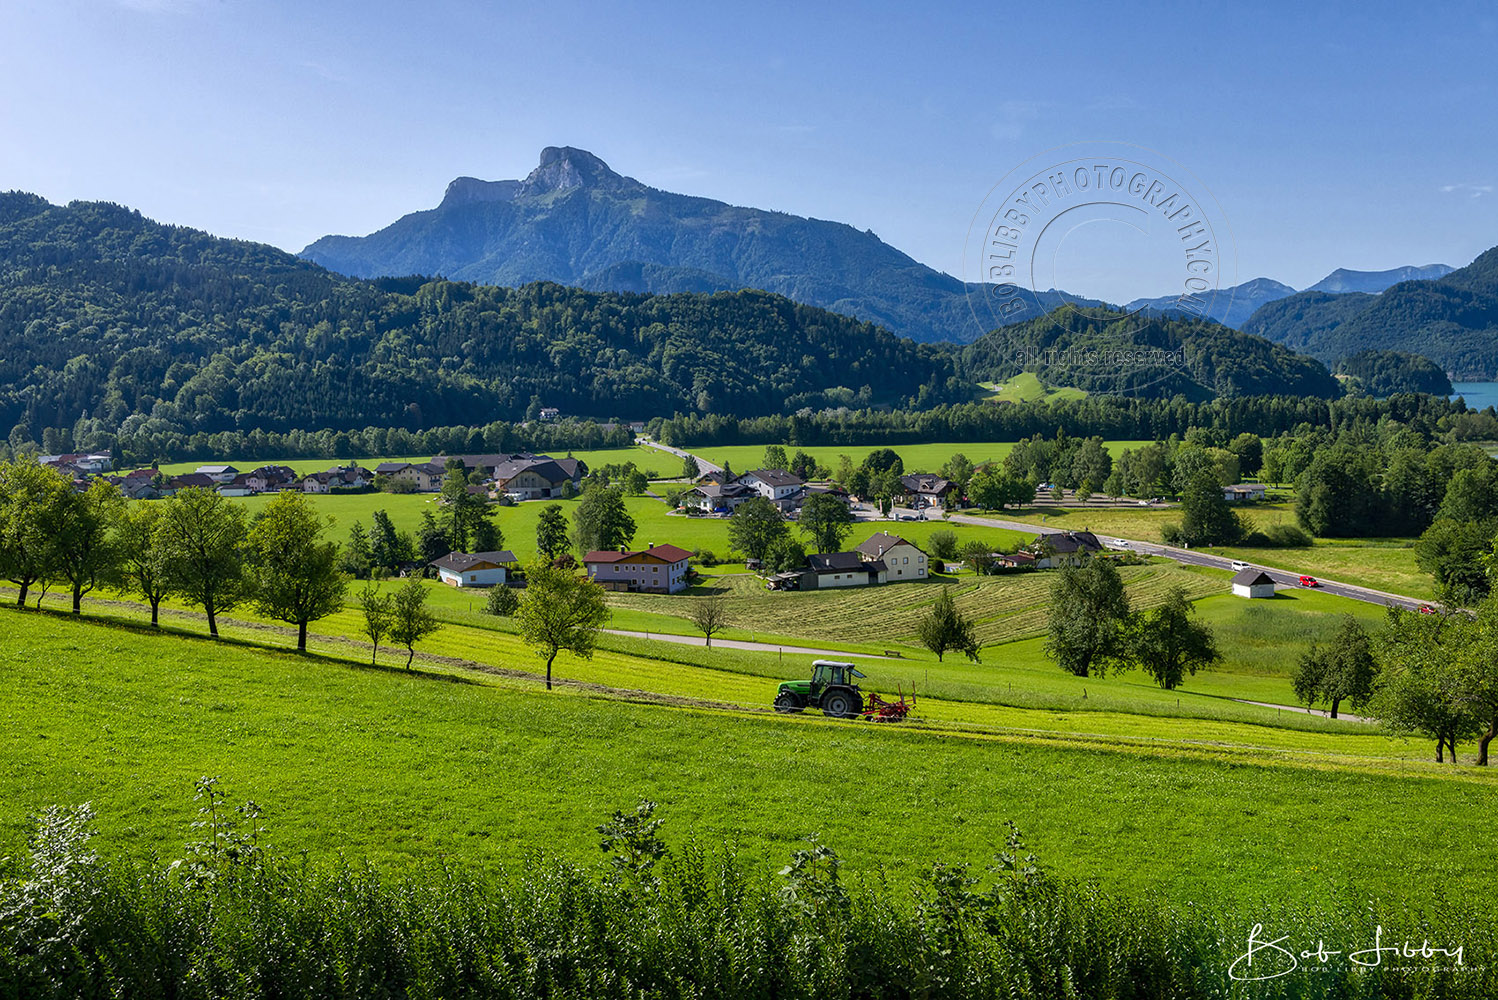 The Mondsee Countryside